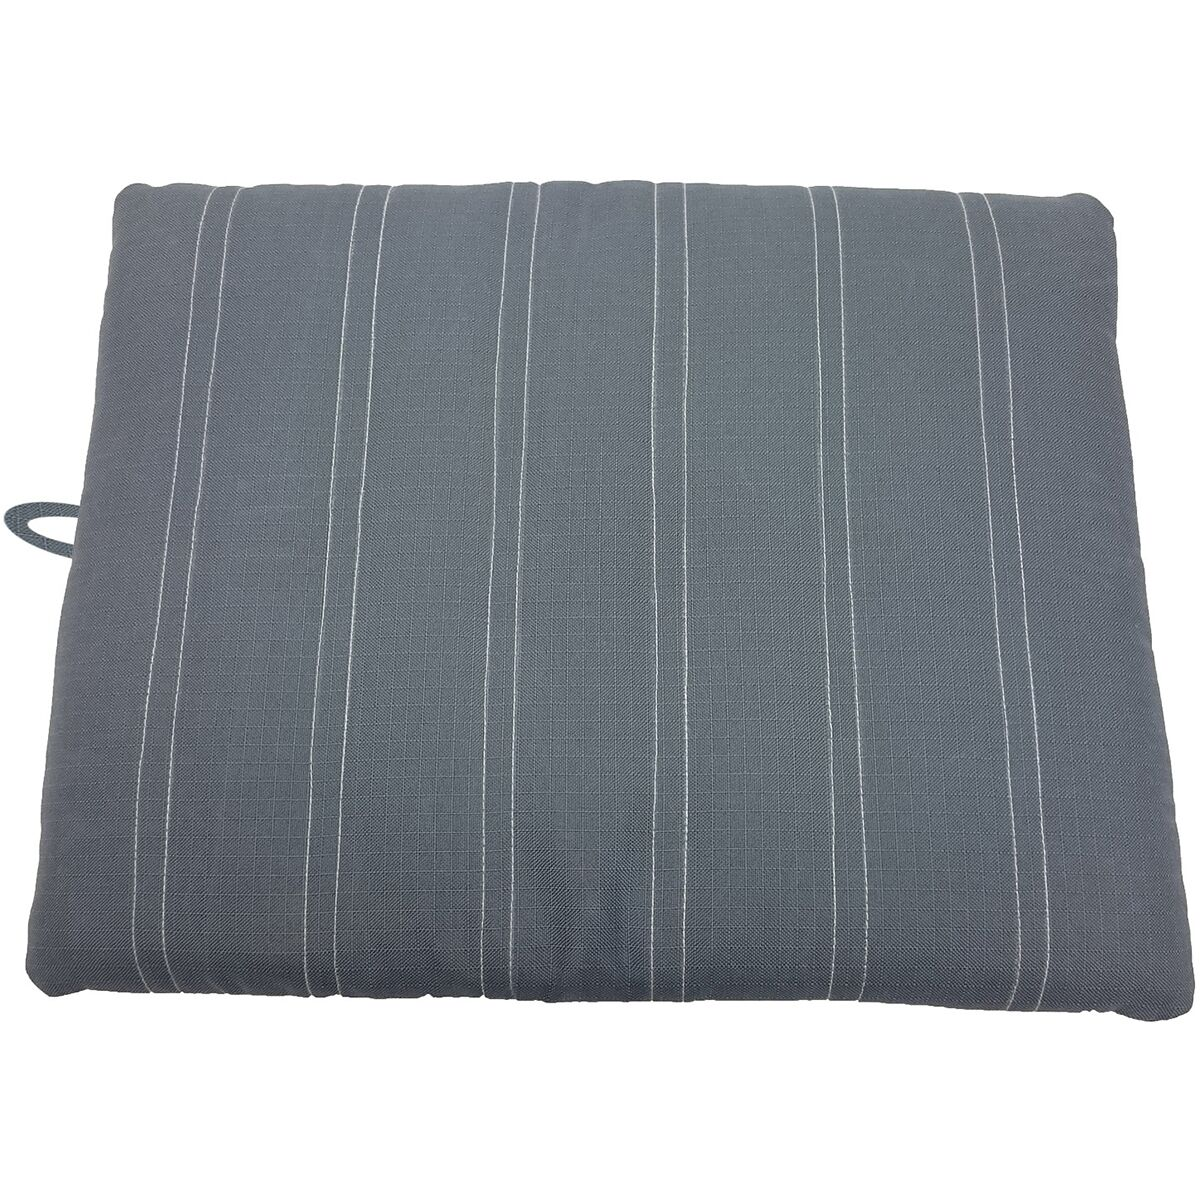 Sleep Zone Durable Pet Pad Bed Size: 45